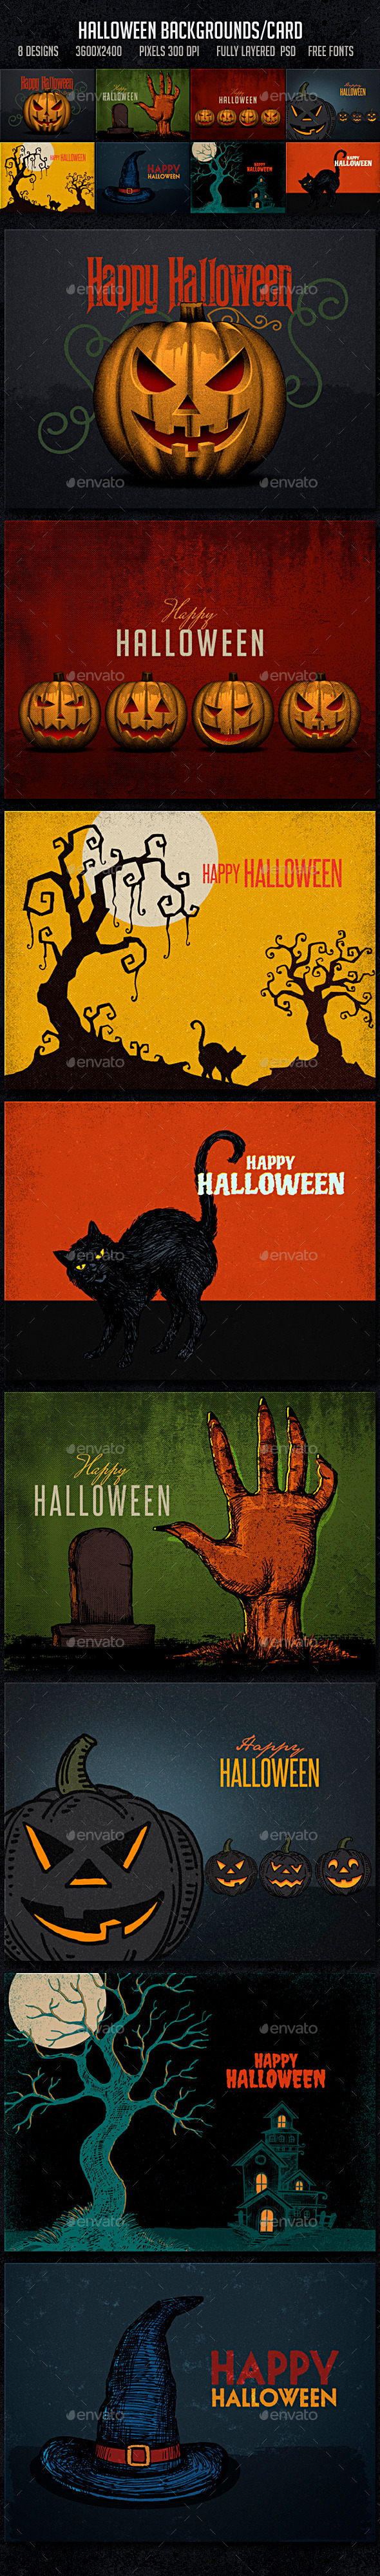 Halloween Backgrounds Card